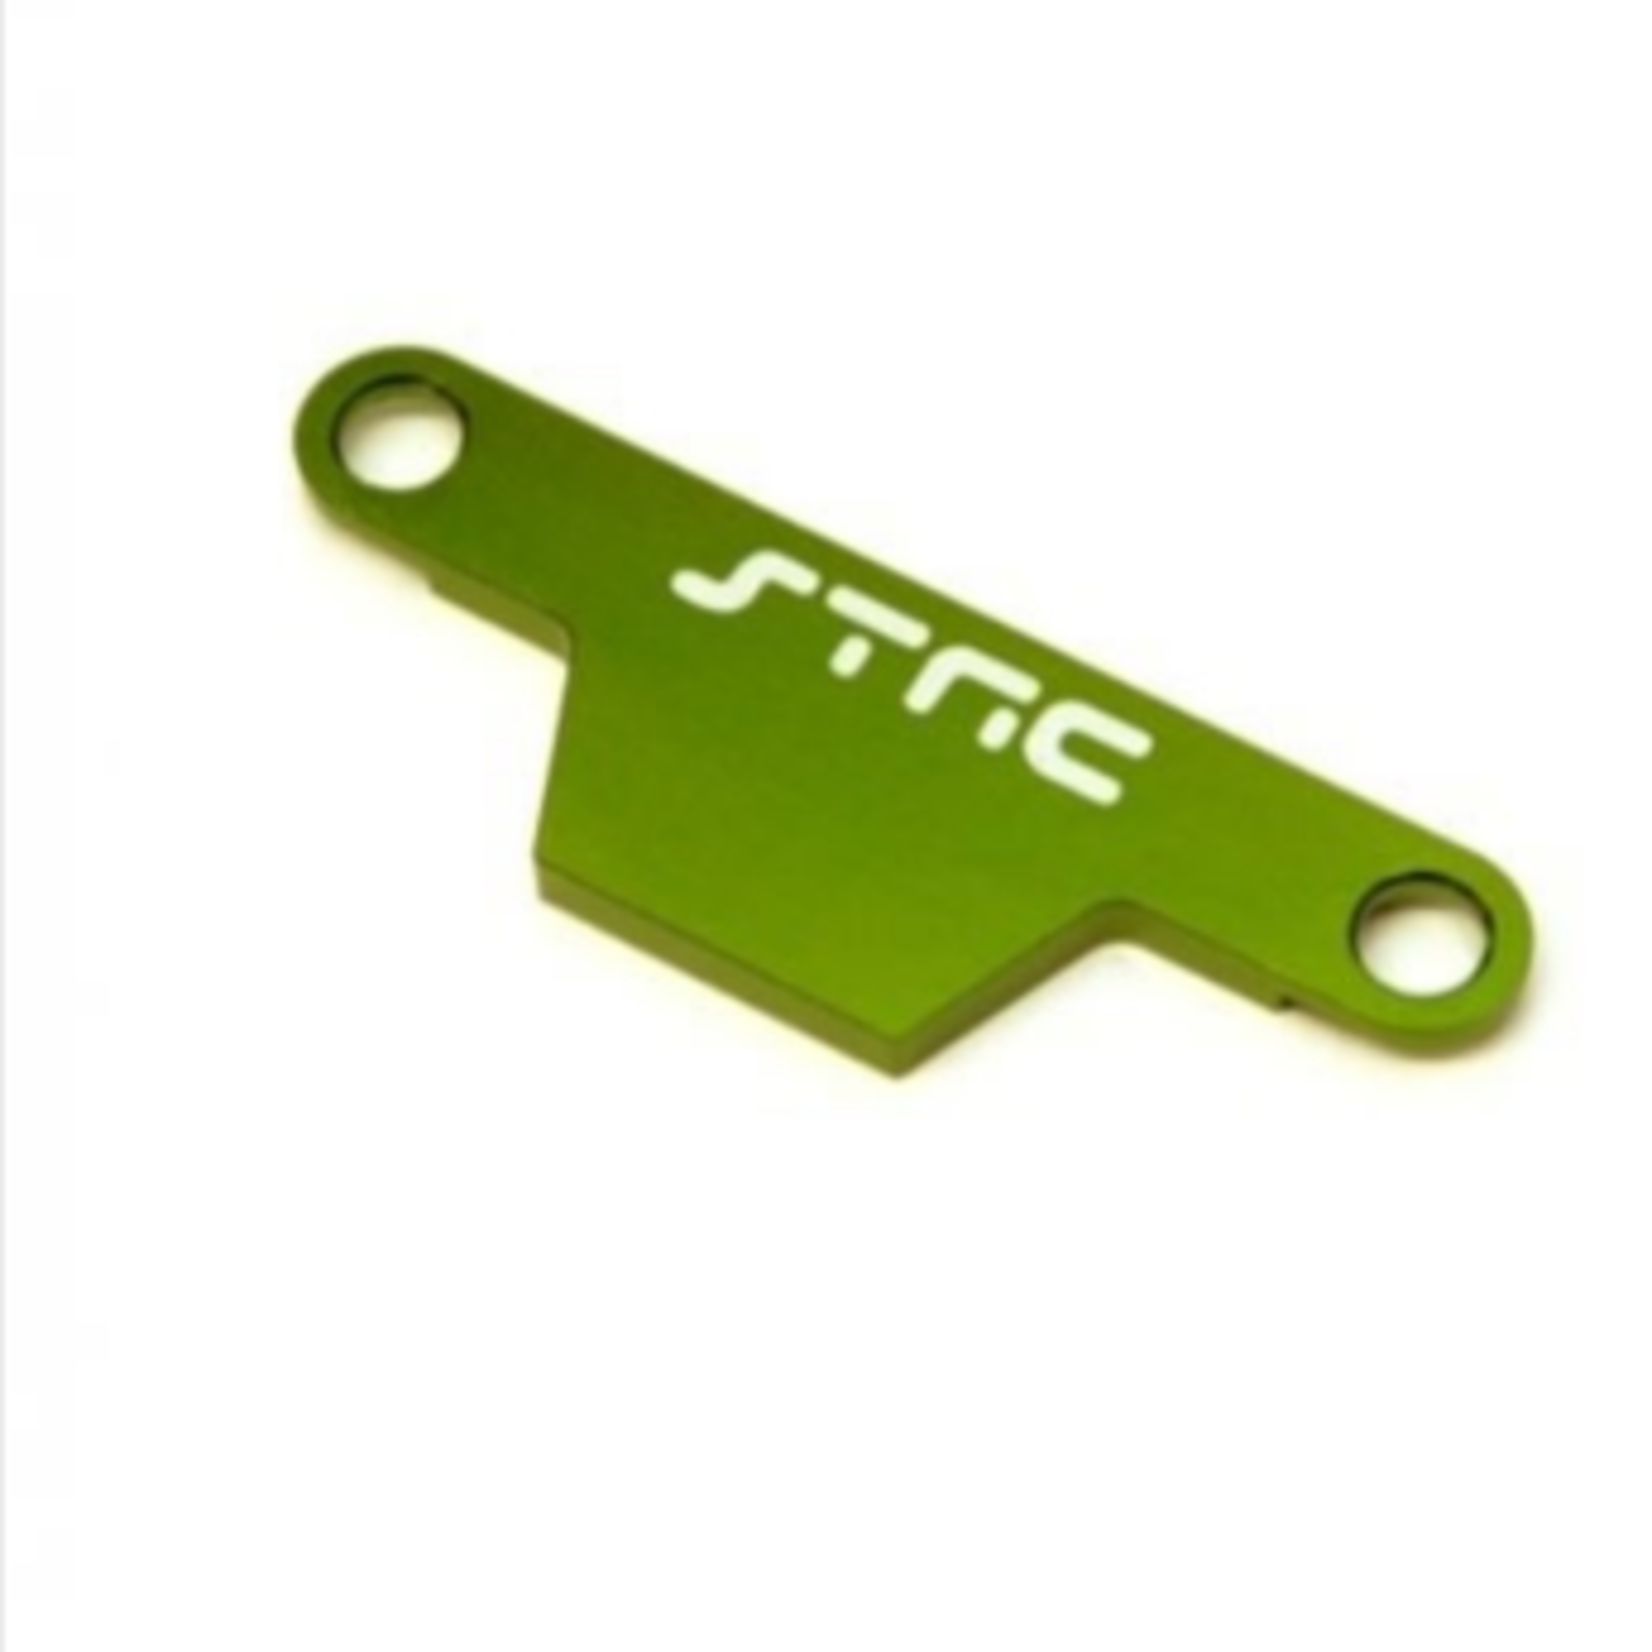 ST Racing Concepts SPTST3727AG ST Racing Concepts CNC Machined Alum. Battery Hold-down Plate for Rustler/Bandit (Green)